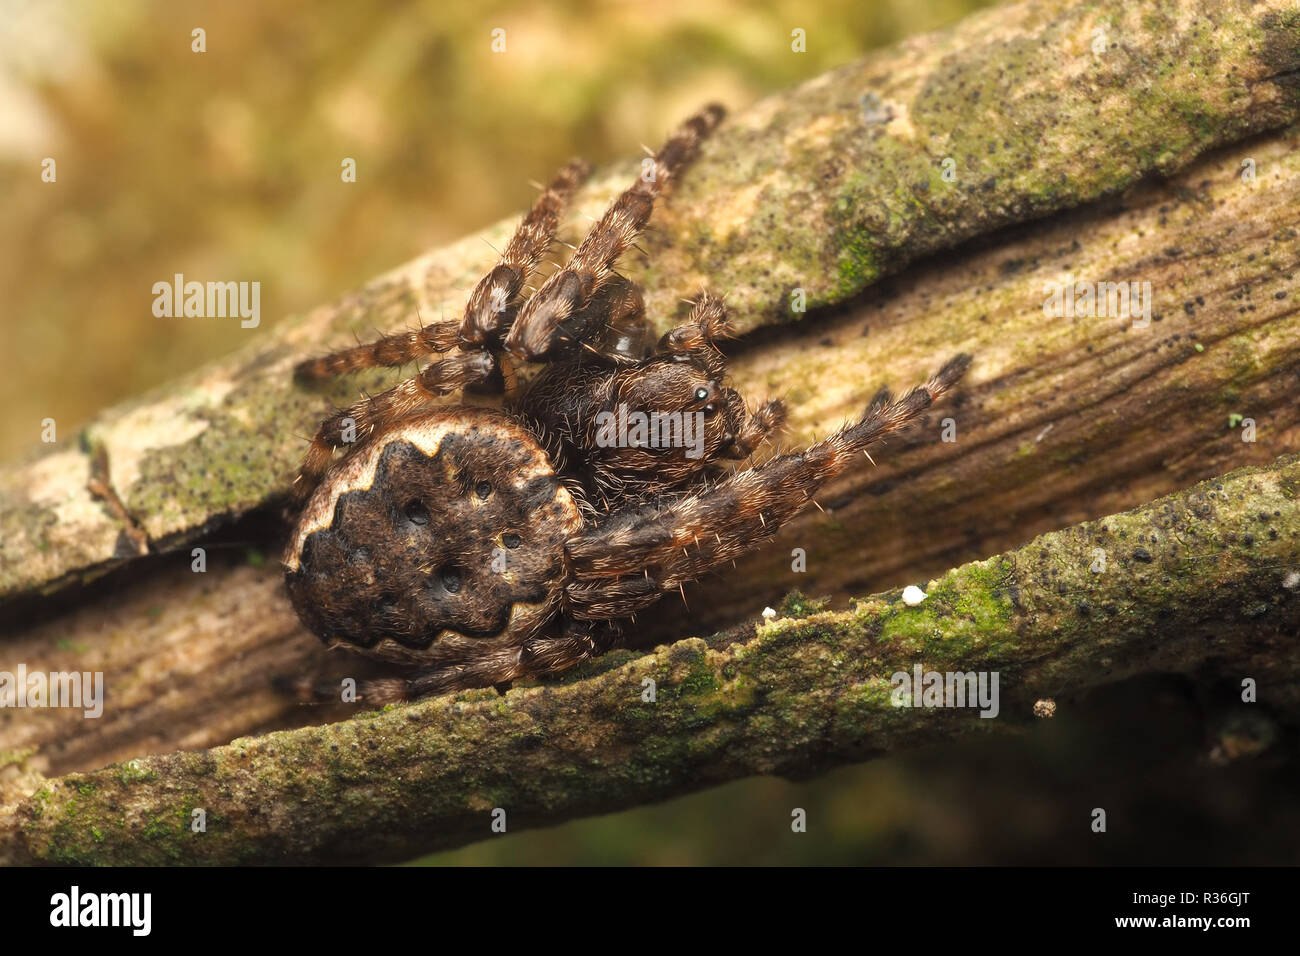 Walnut Orb-weaver spider (Nuctenea umbratica) resting on branch of tree. Tipperary, Ireland - Stock Image